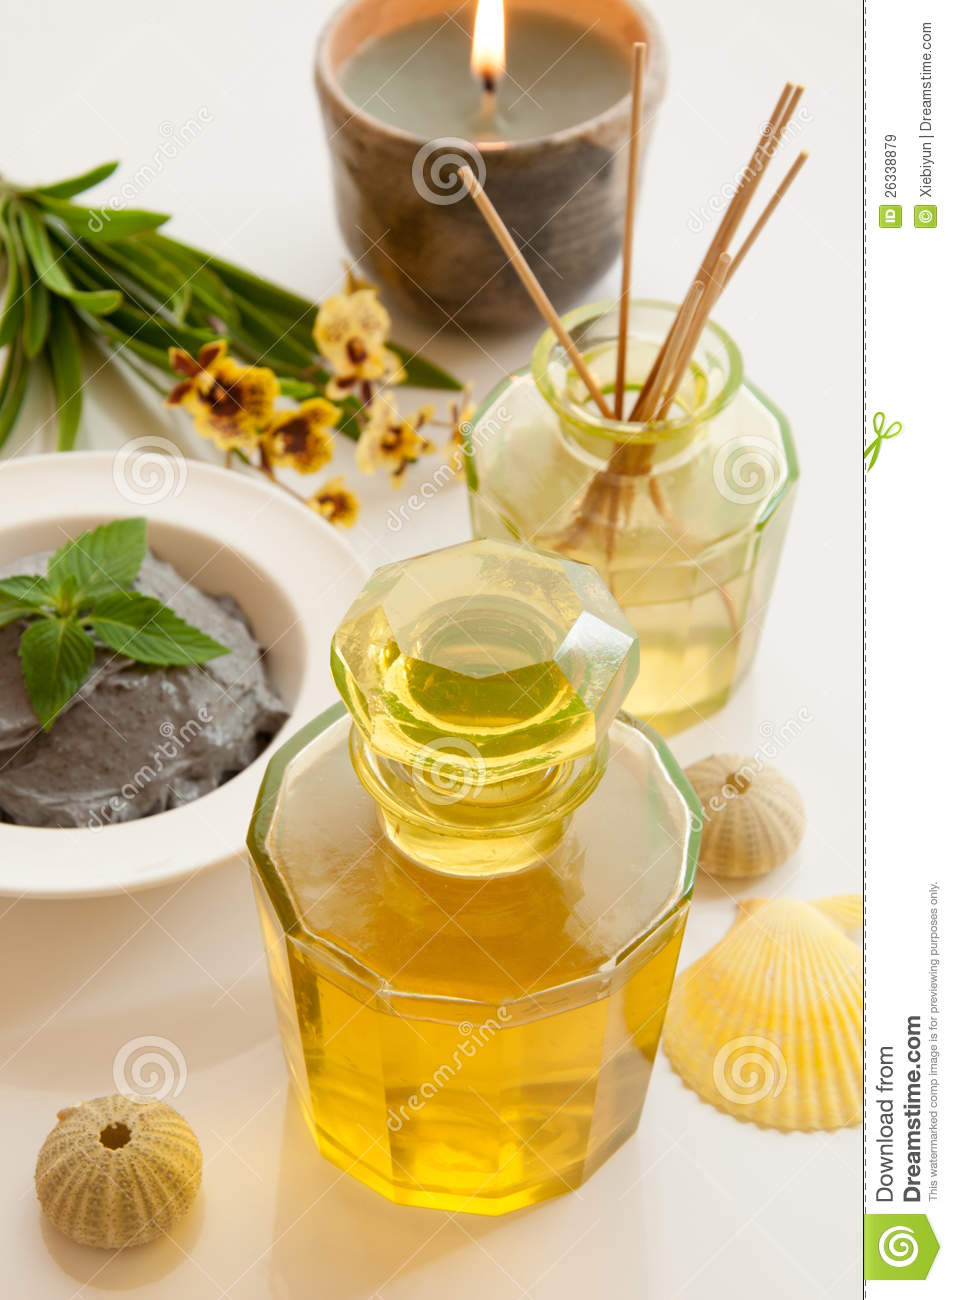 Spa Relaxation Images